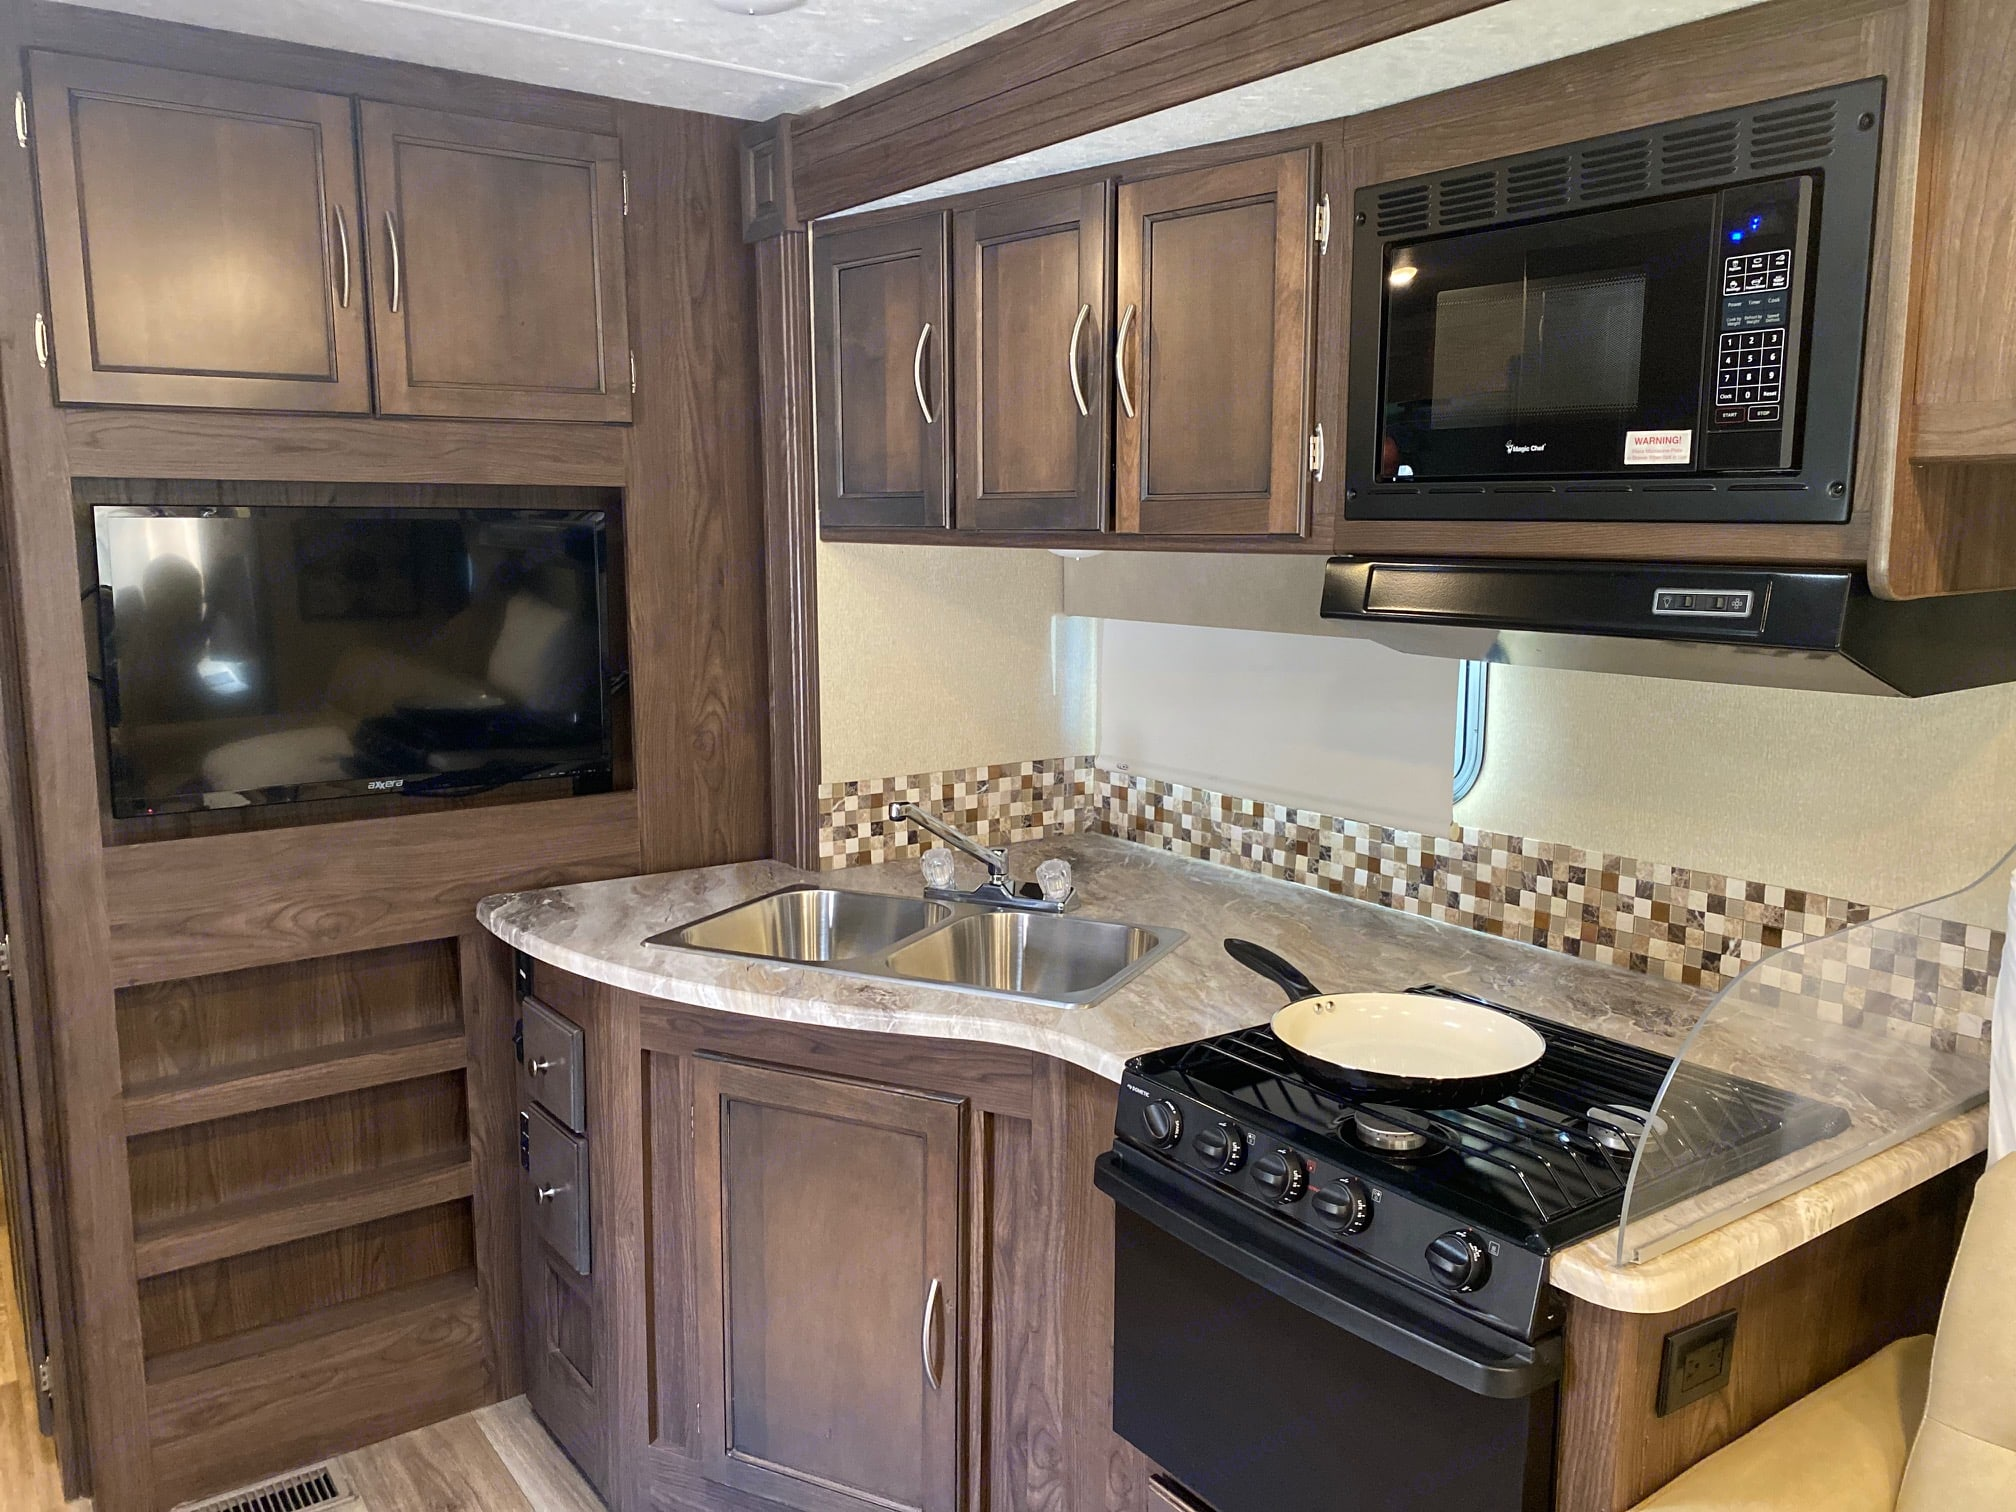 Kitchen area has a microwave, stove, oven, sink, TV, and refrigerator/freezer.  Plenty of cabinet and pantry space provided. . Coachmen Pursuit 2019